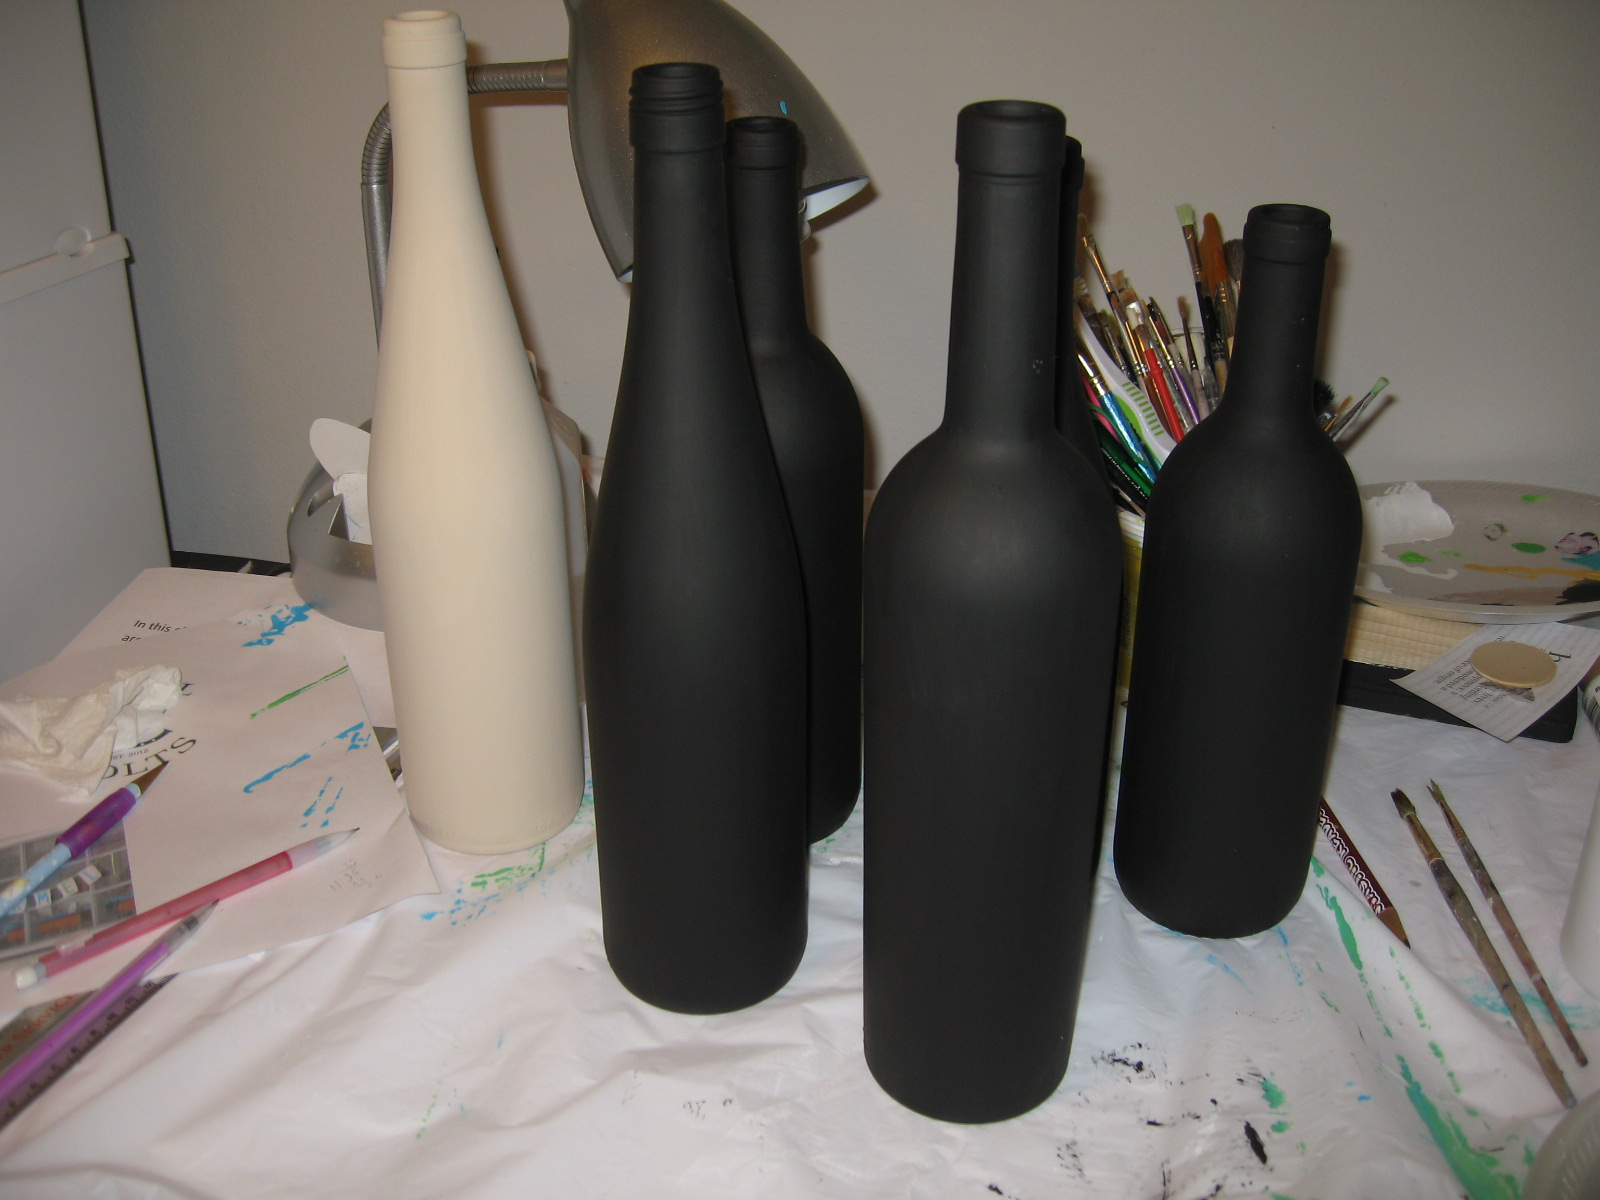 Anton murals how to paint a wine bottle for What paint do you use to paint wine glasses